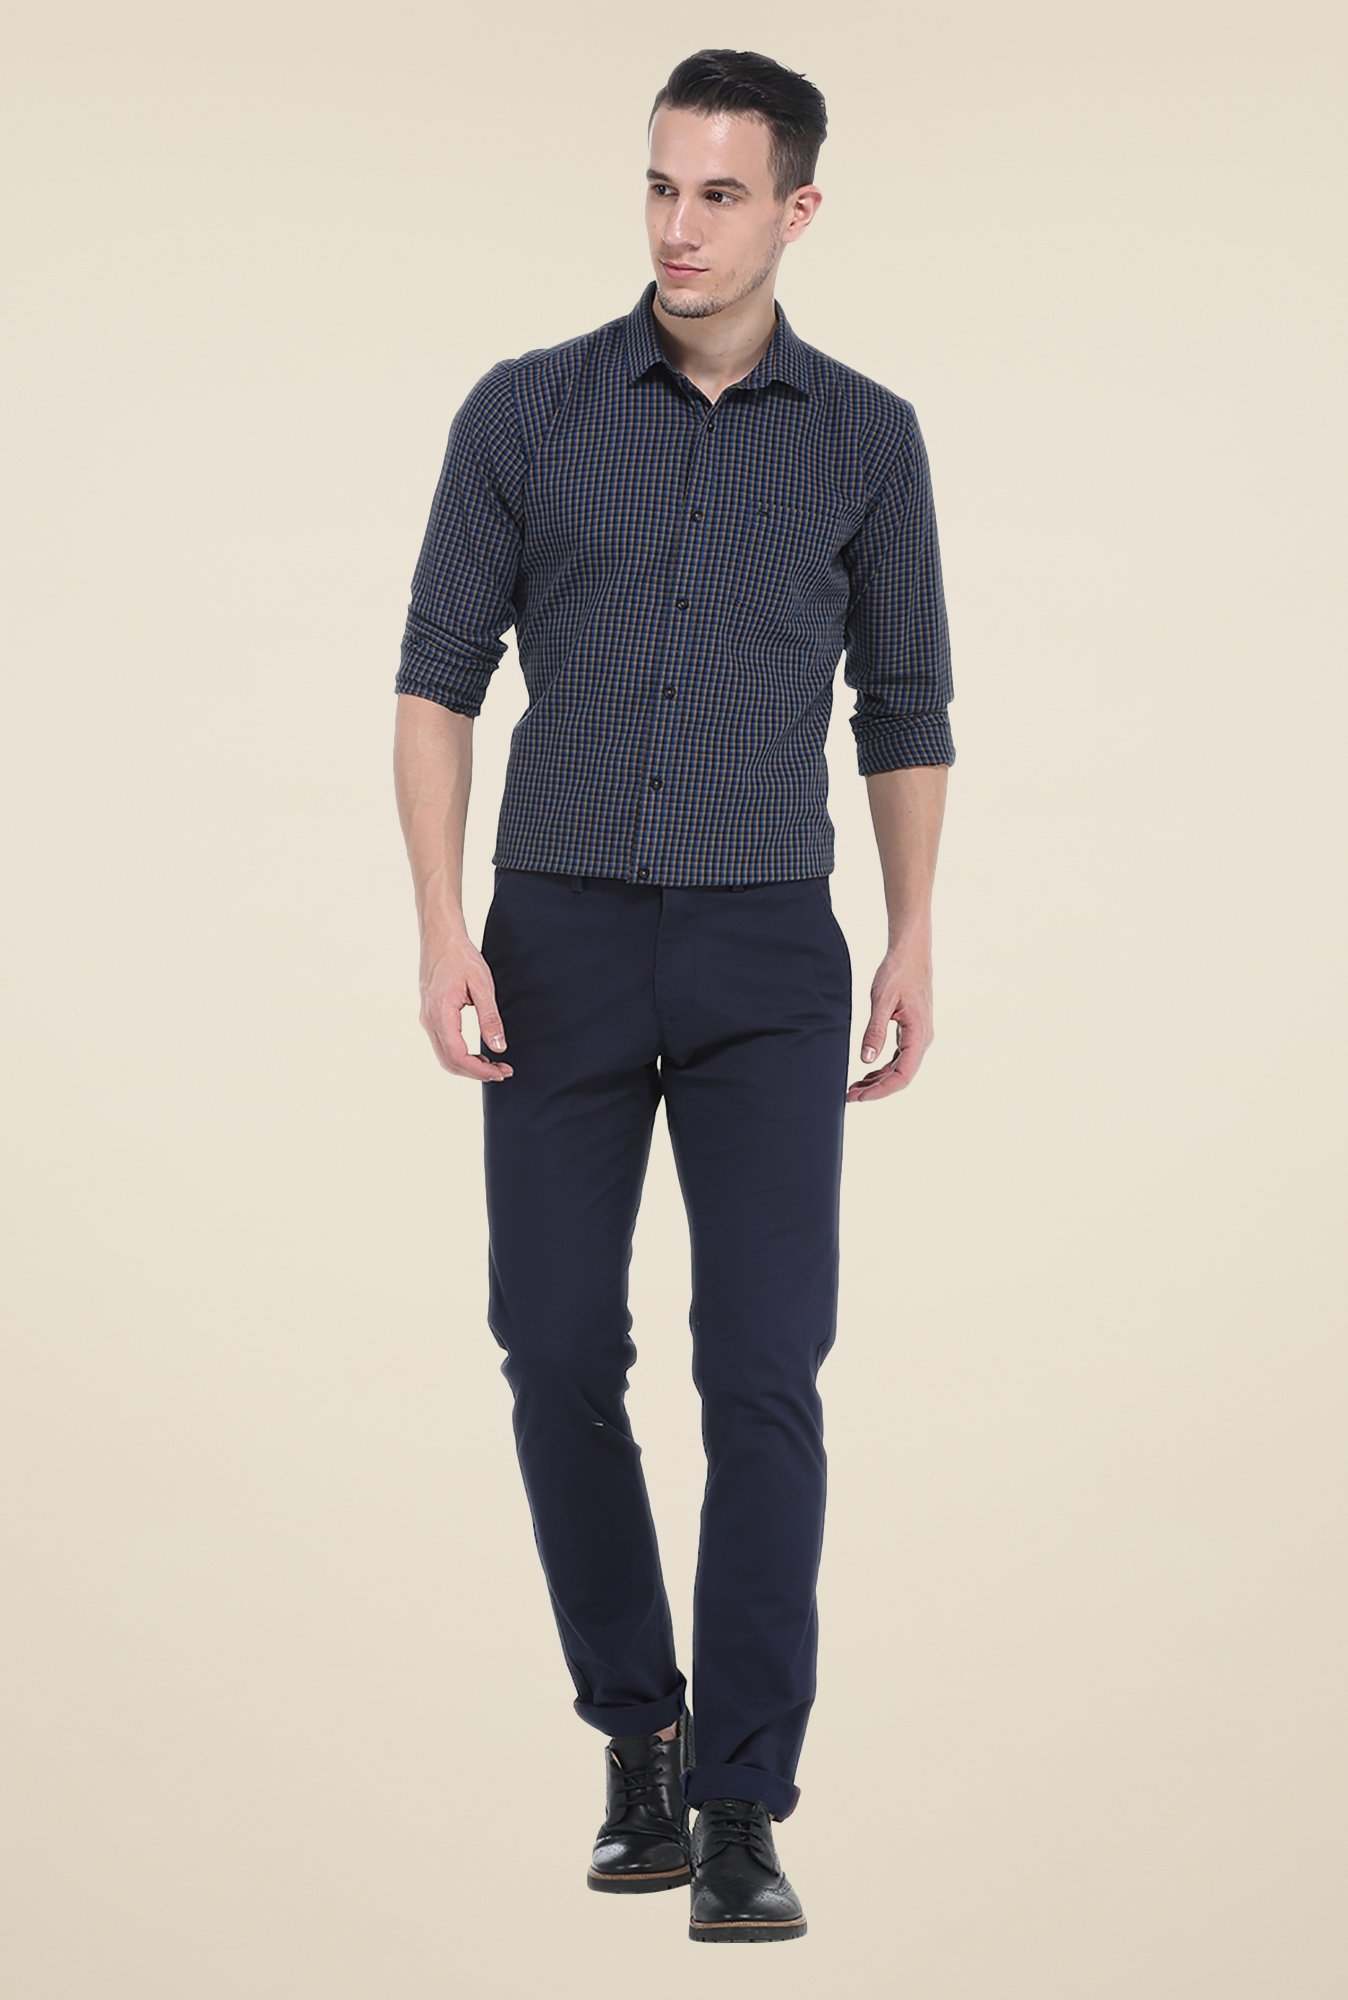 Basics Navy Full Sleeve Cotton Shirt